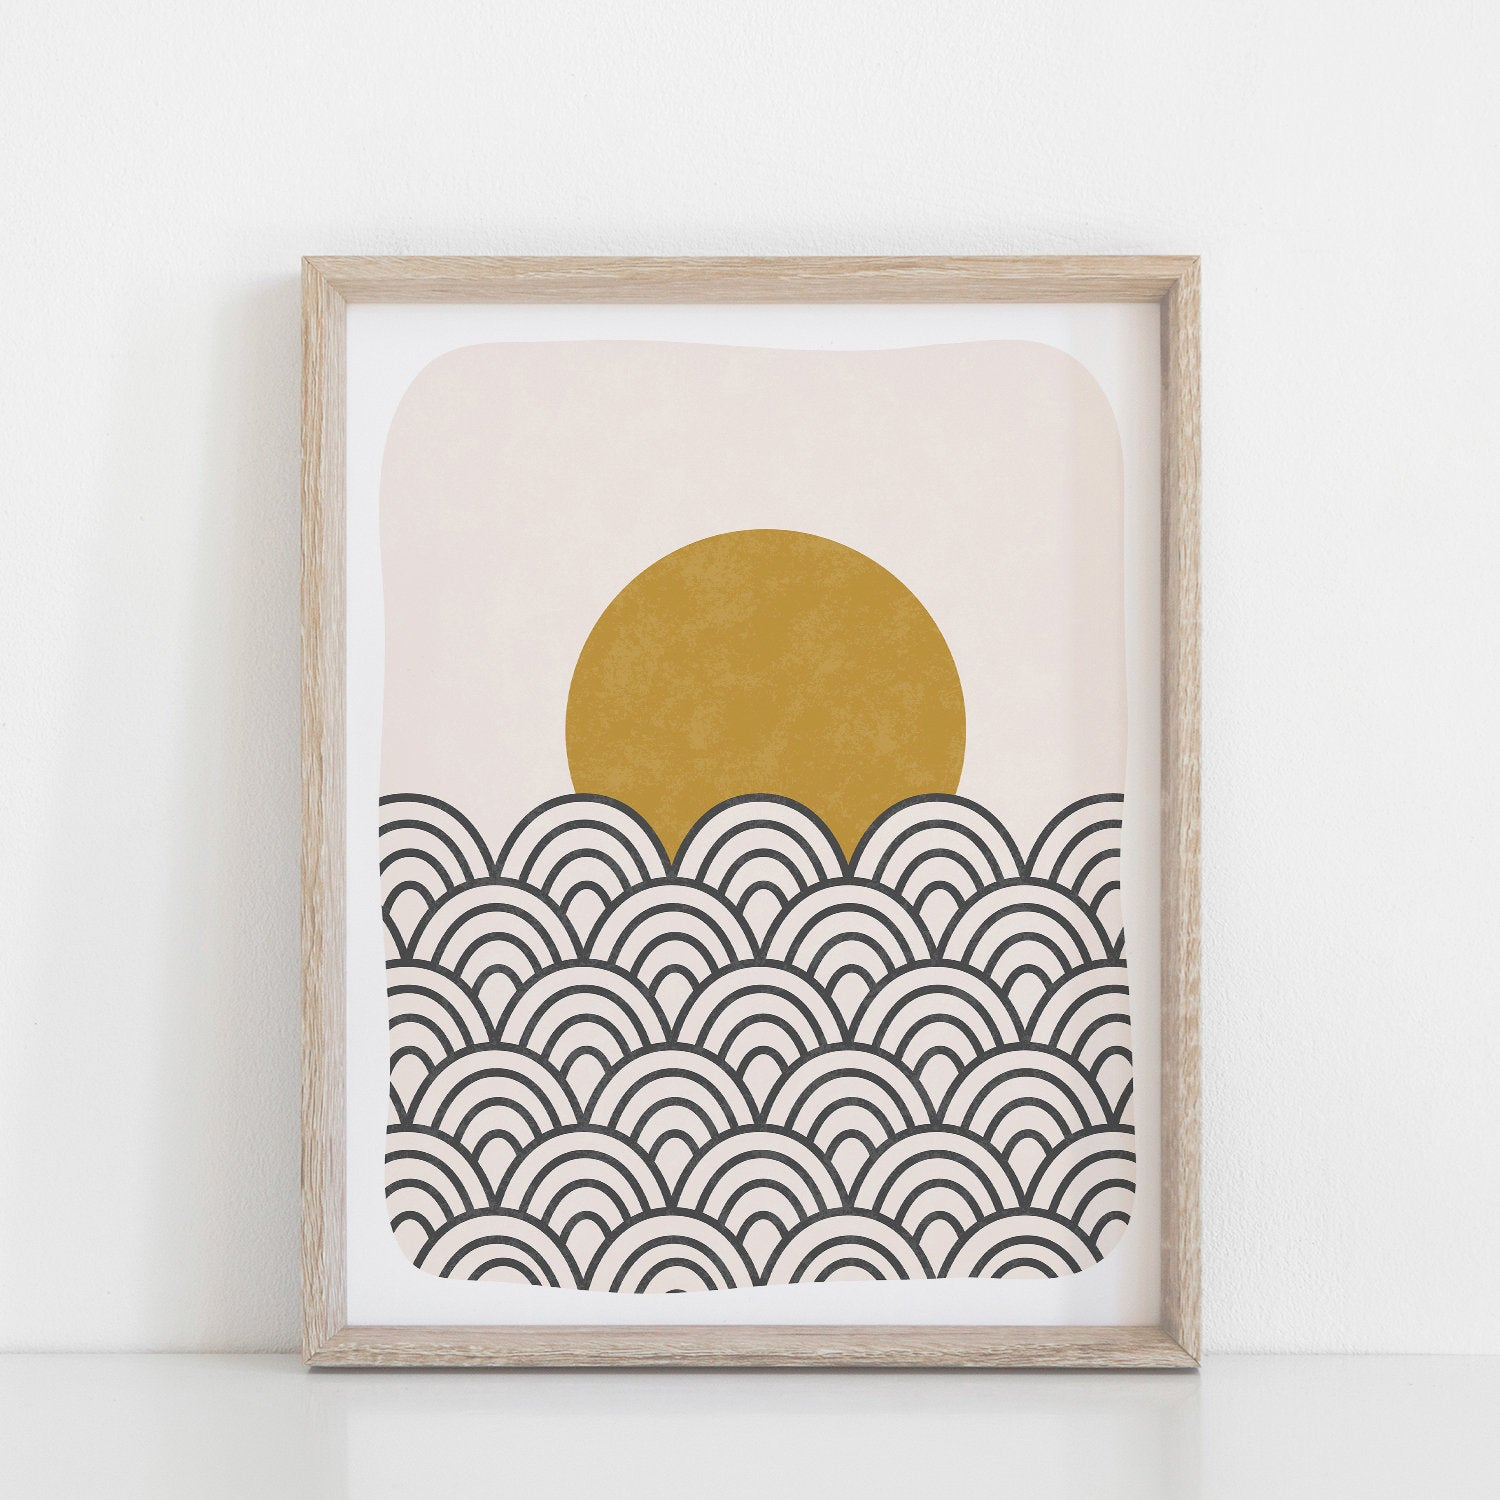 Waves & Sun Art Print - Black Ochre | Waves Art | Sun Art | Wall Art | 8x10 Print | 11x14 Print | Minimalist Art | Geometric Art